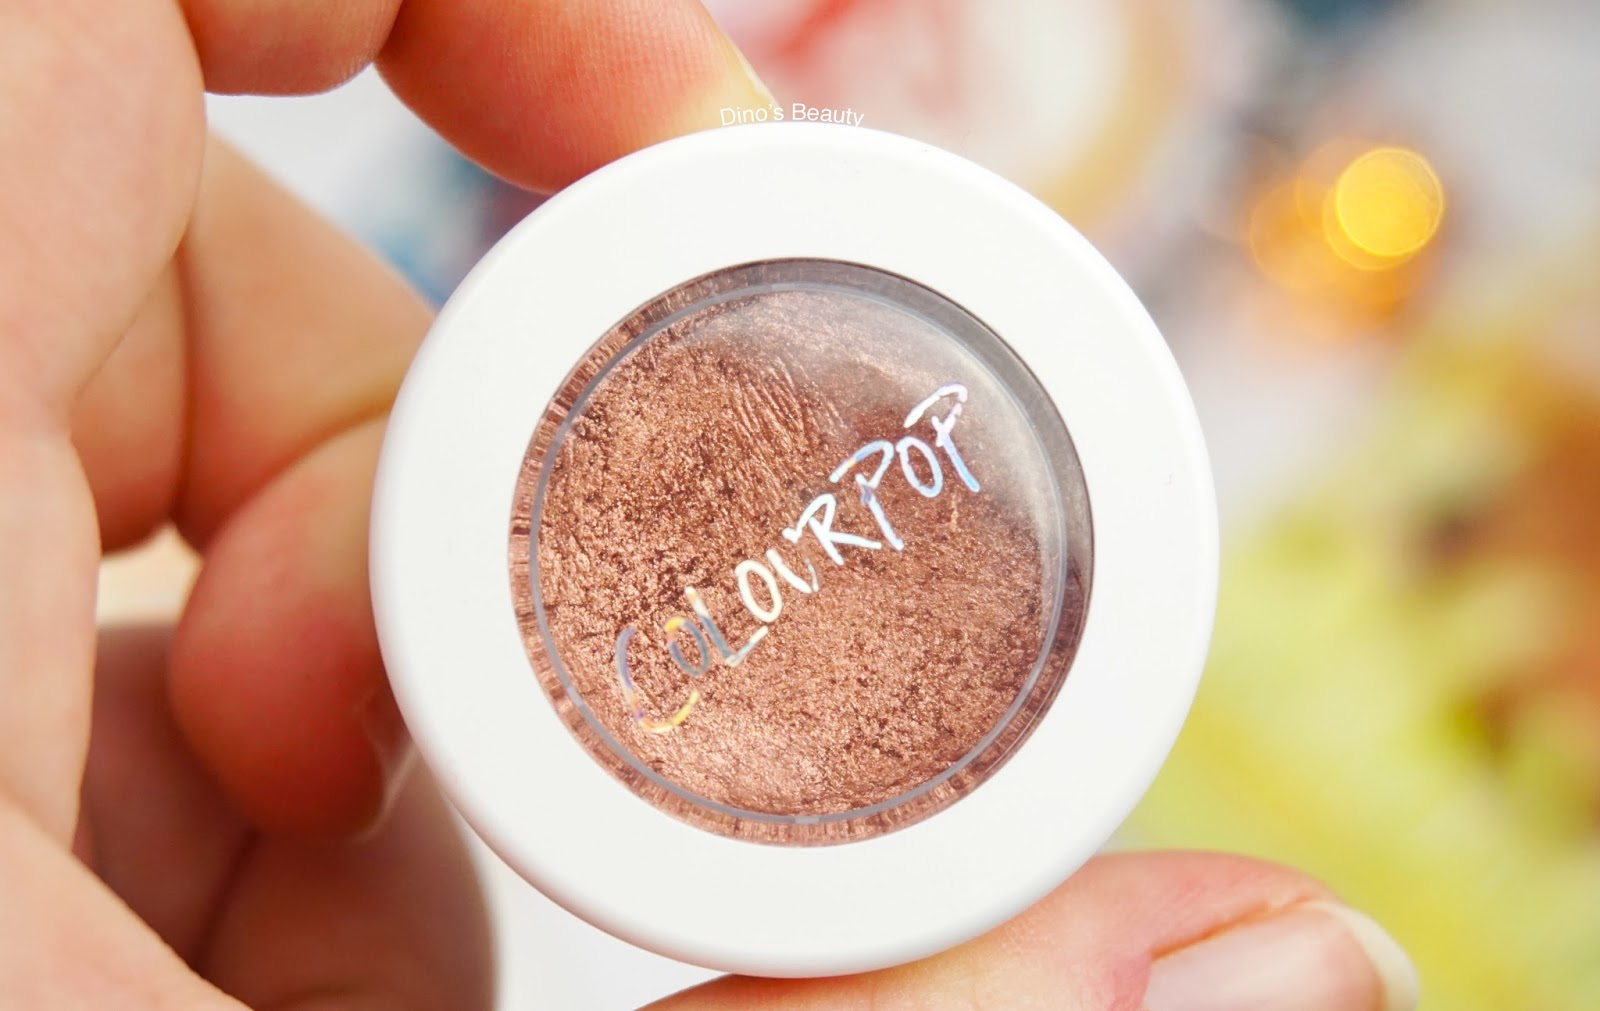 Beauty, Lifestyle, Beauty Bloggers, Bloggers, Lifestyle Bloggers, 2016, 2016 Favourites, Colourpop, Super Shock, Eyeshadow, Colourpop Eyeshadow, Weenie, Rose Gold